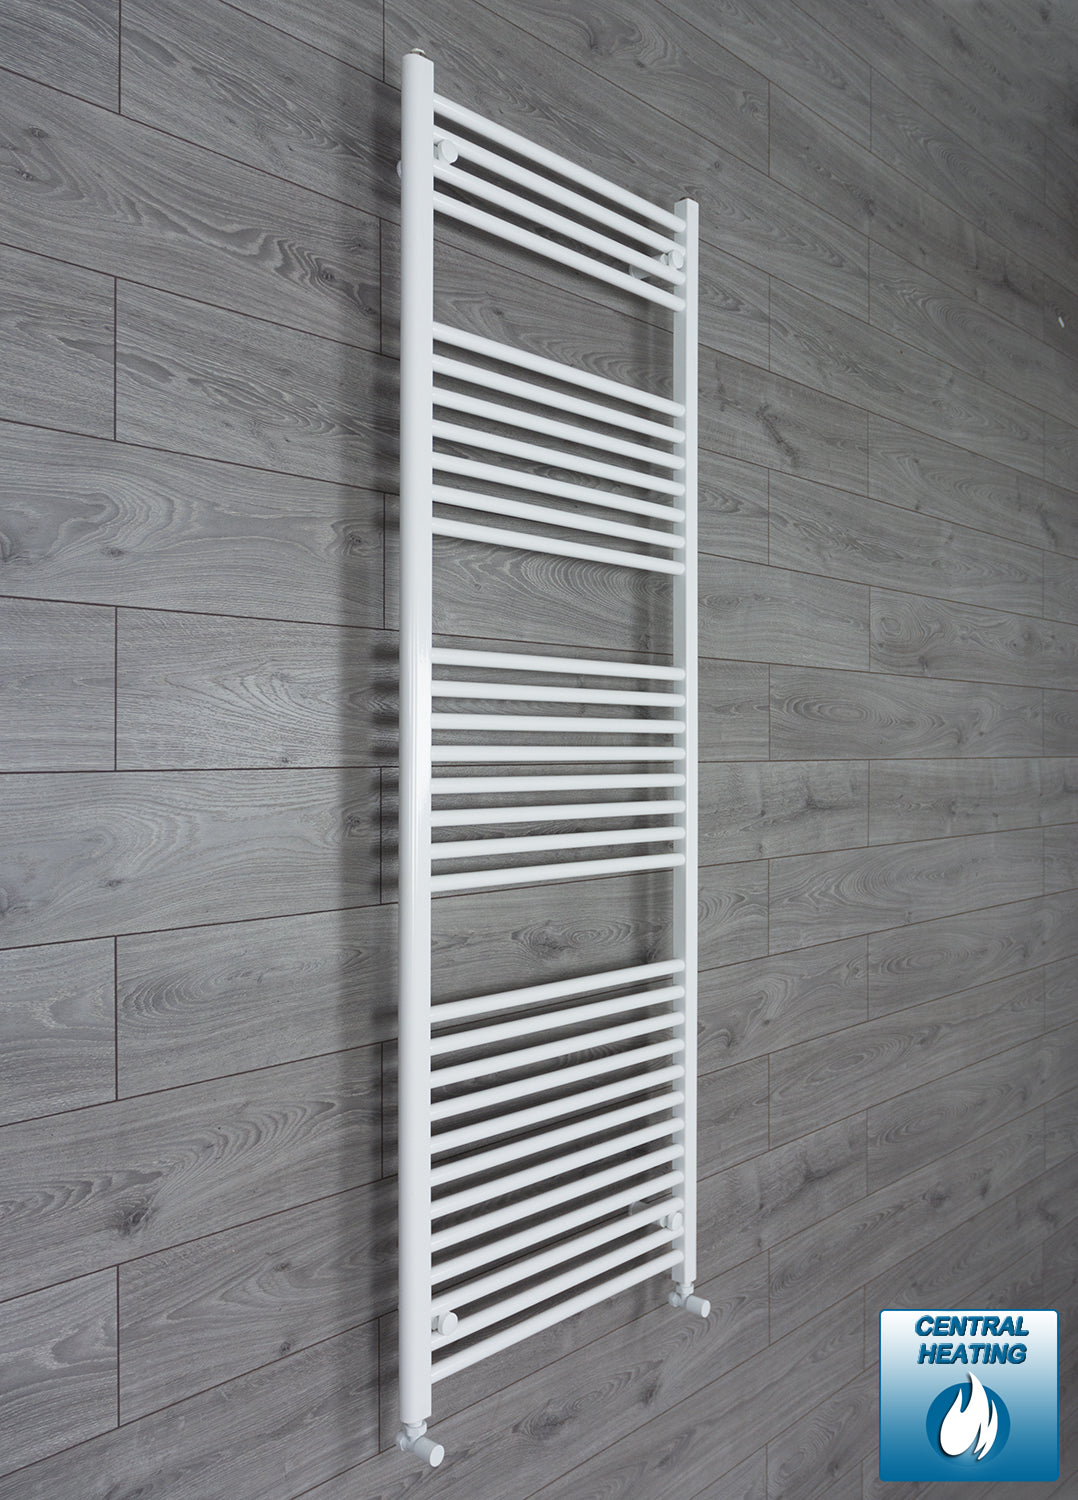 650mm x 1800mm High White Towel Rail Radiator With Angled Valve